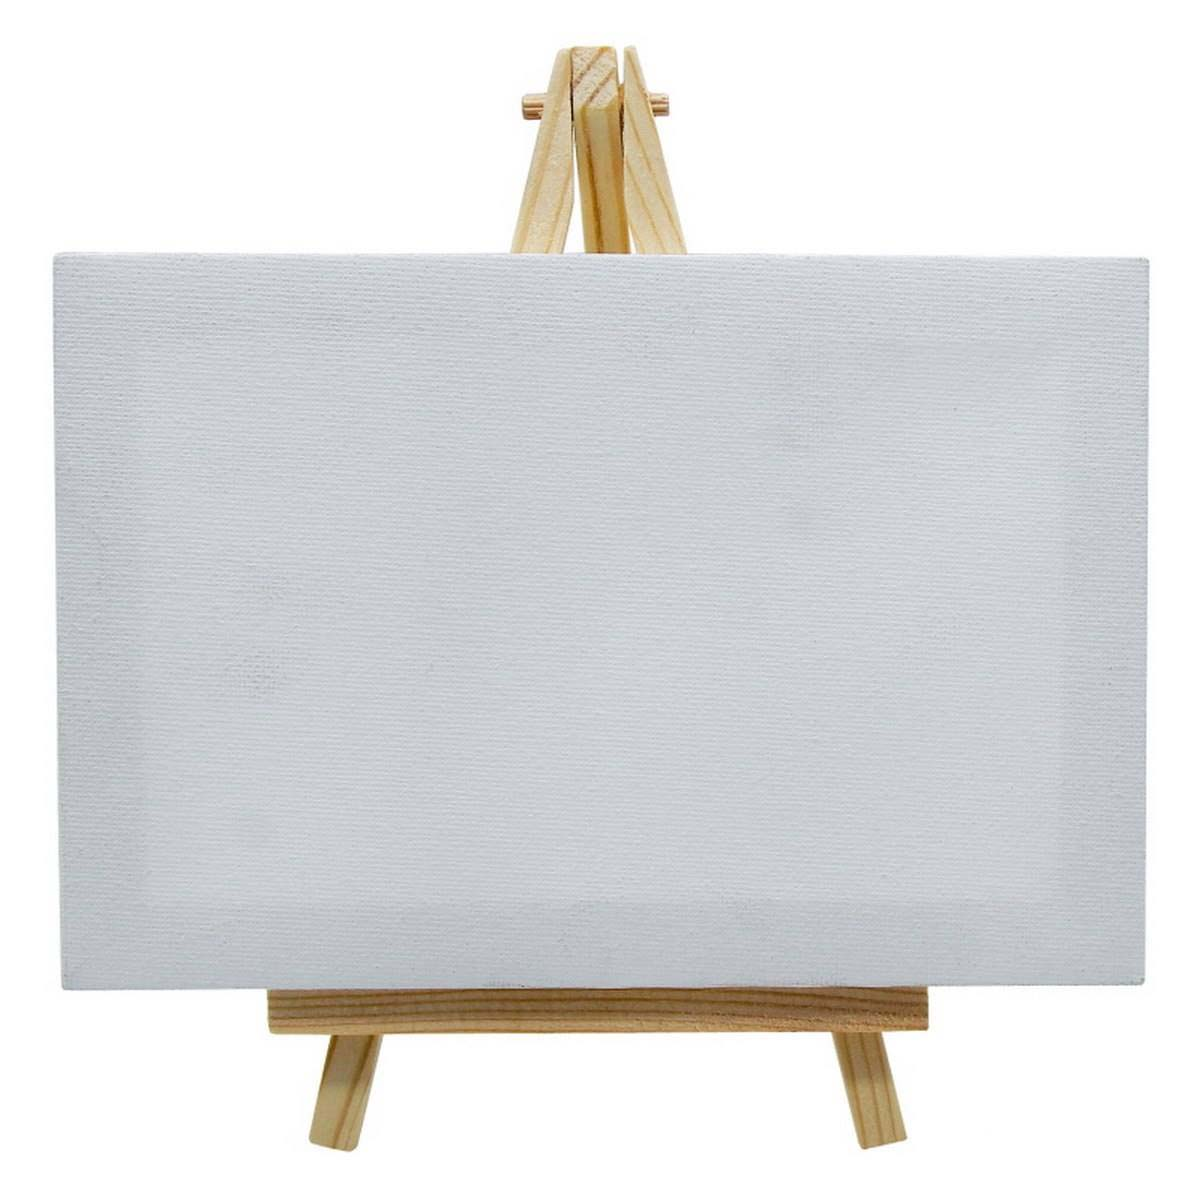 Mini Stretched Canvas With Easel (4.5x7 Inch)